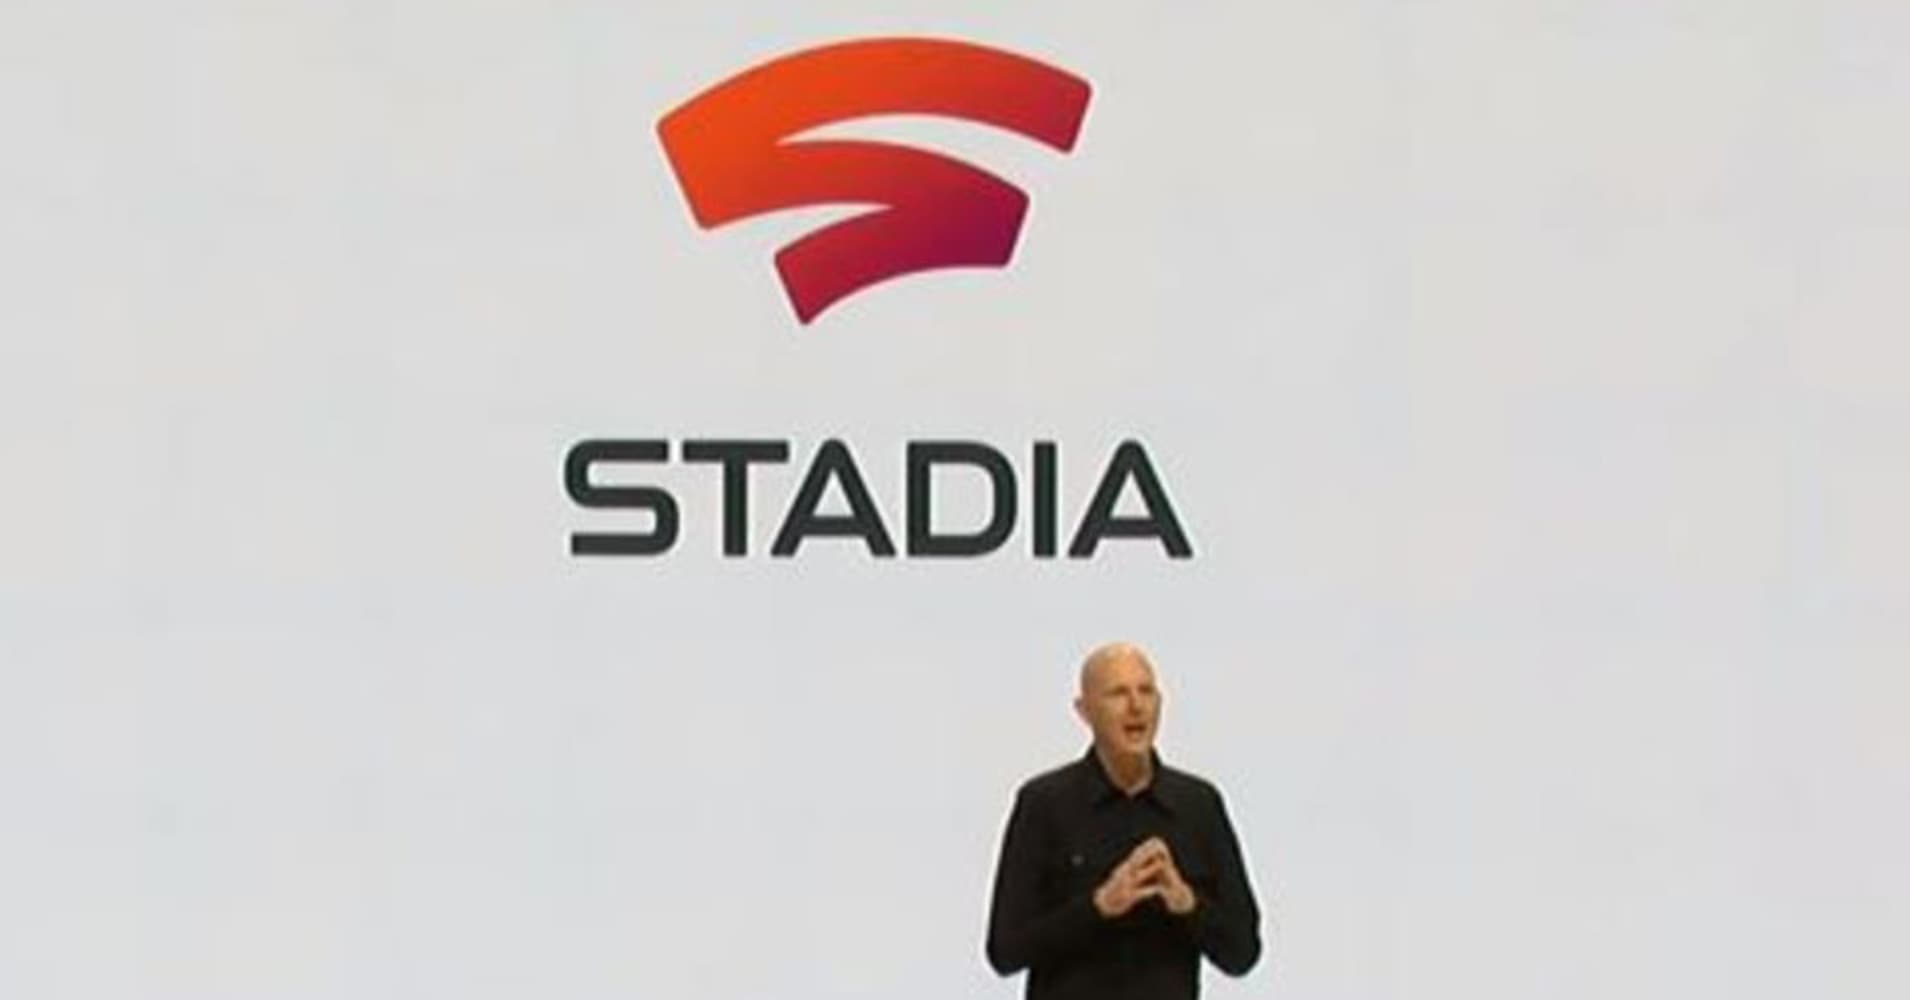 Google announces Stadia streaming game platform in effort to upend the $140 billion game market